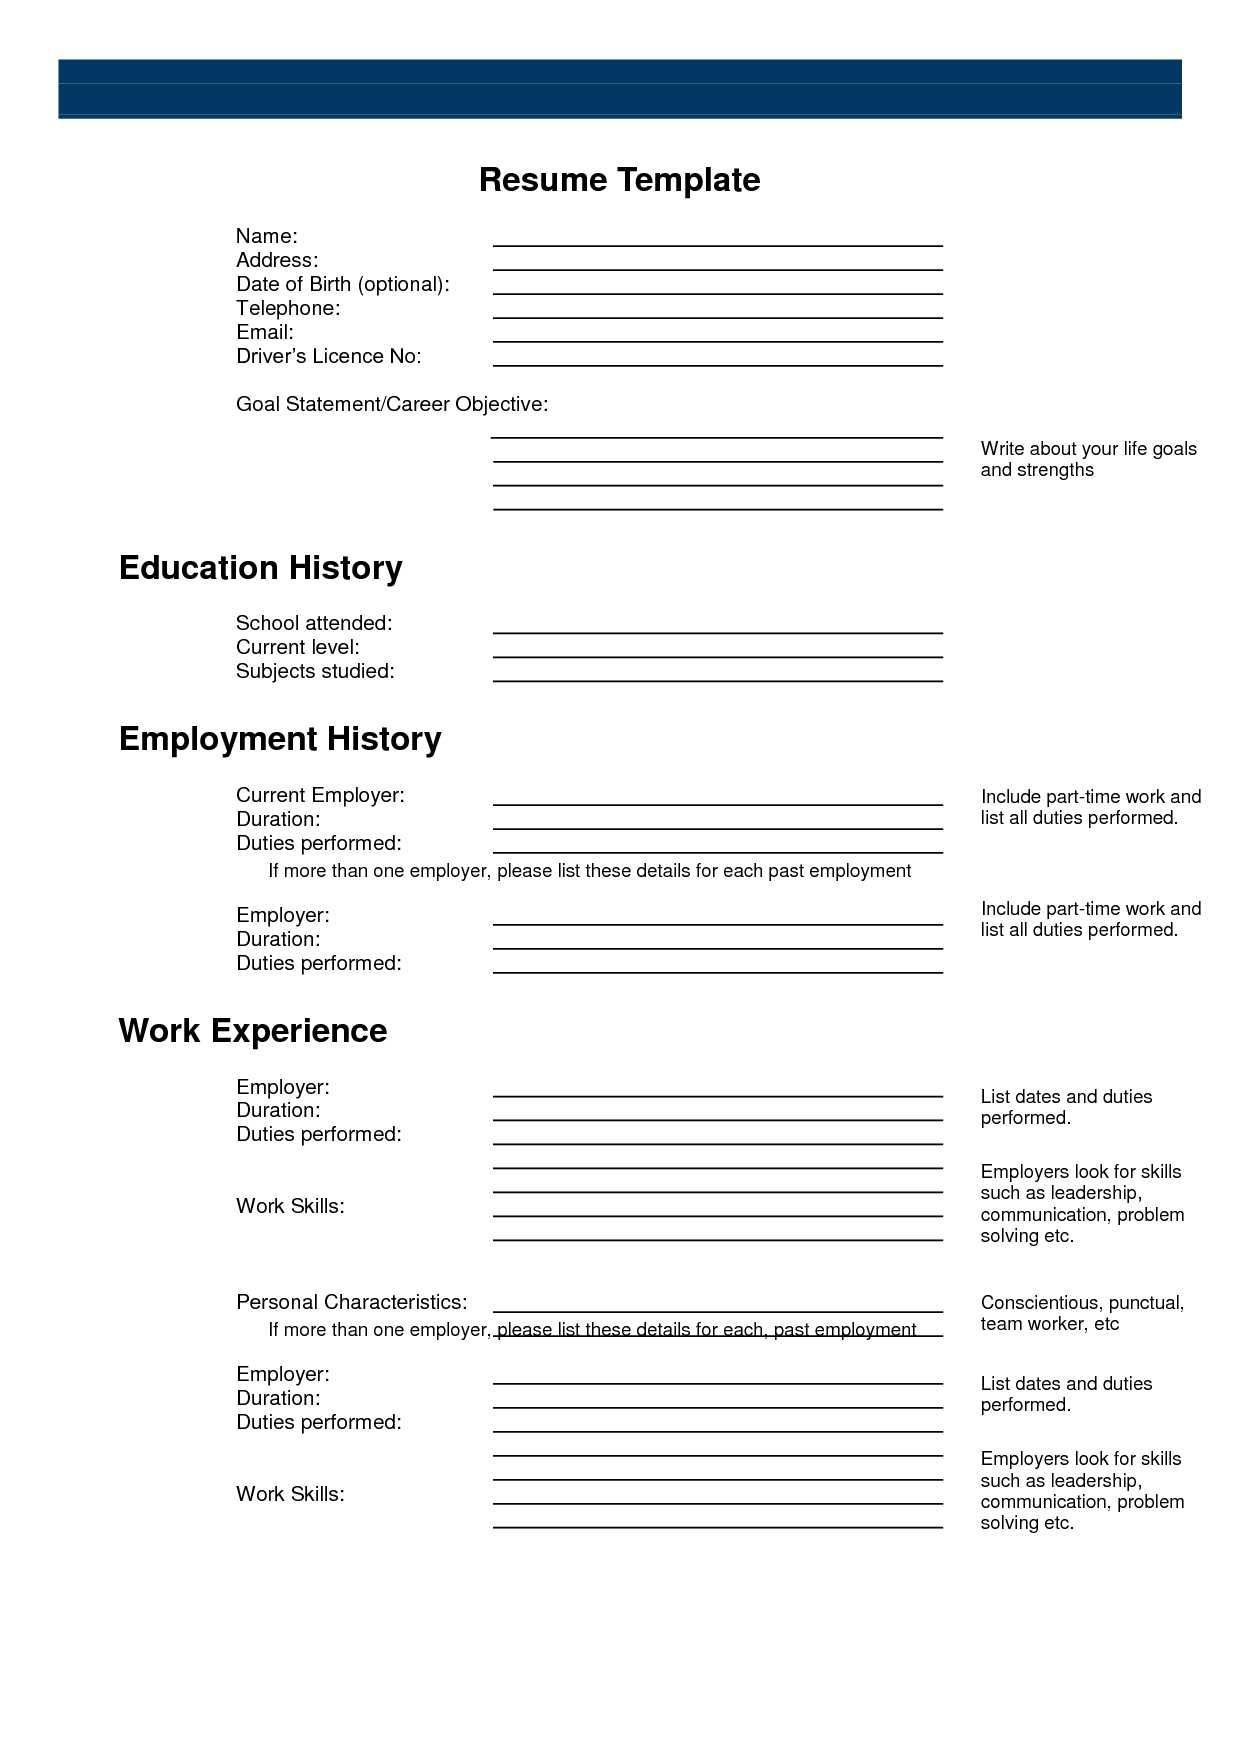 Pinanishfeds On Resumes | Sample Resume Templates, Free - Free Online Resume Templates Printable